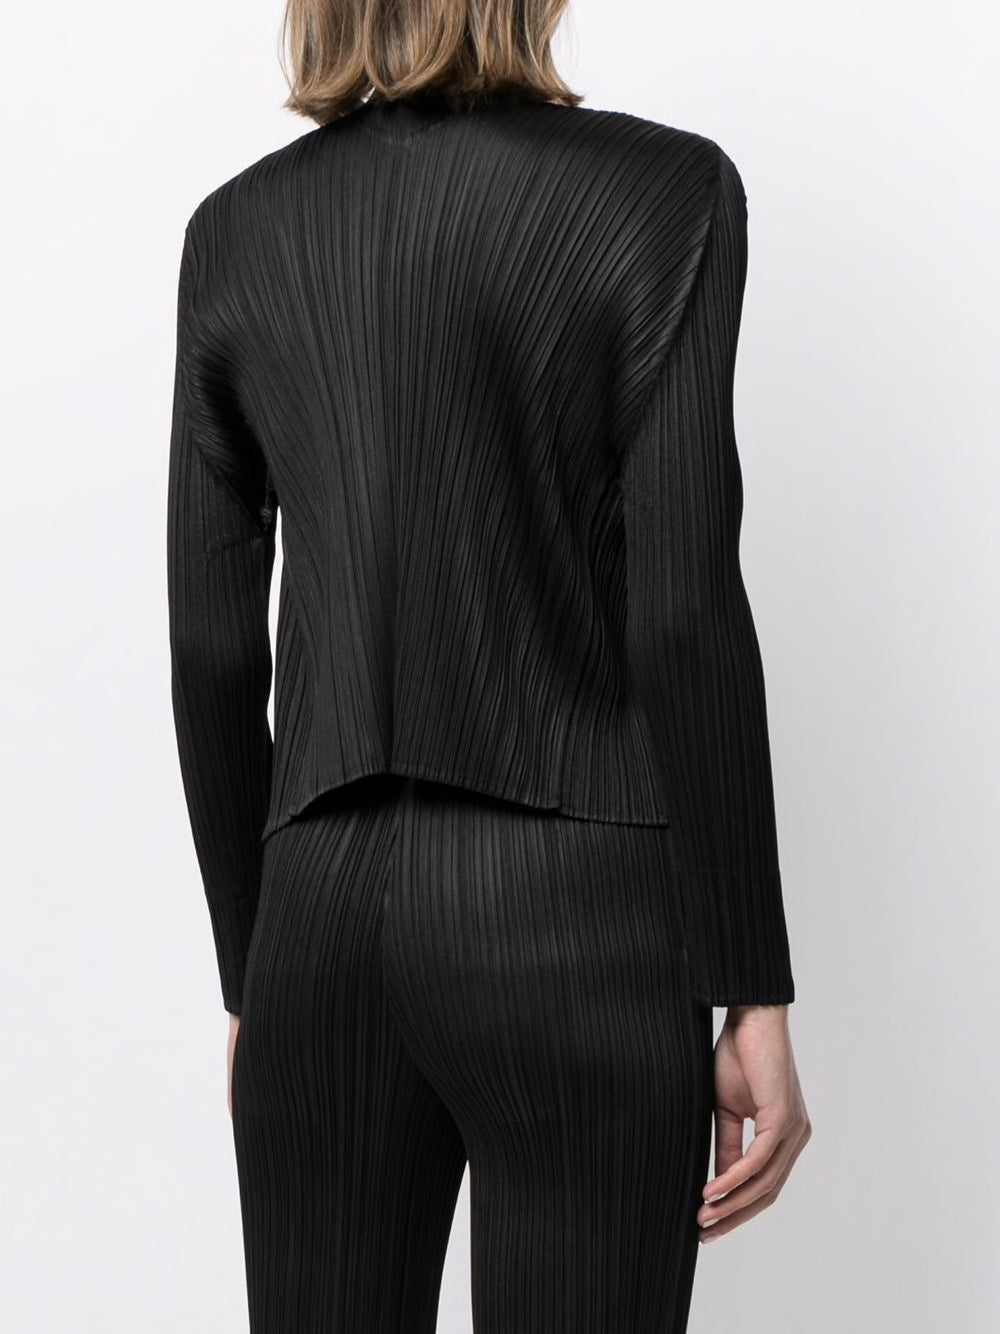 PLEATS PLEASE ISSEY MIYAKE WOMEN PLEATED CARDIGAN